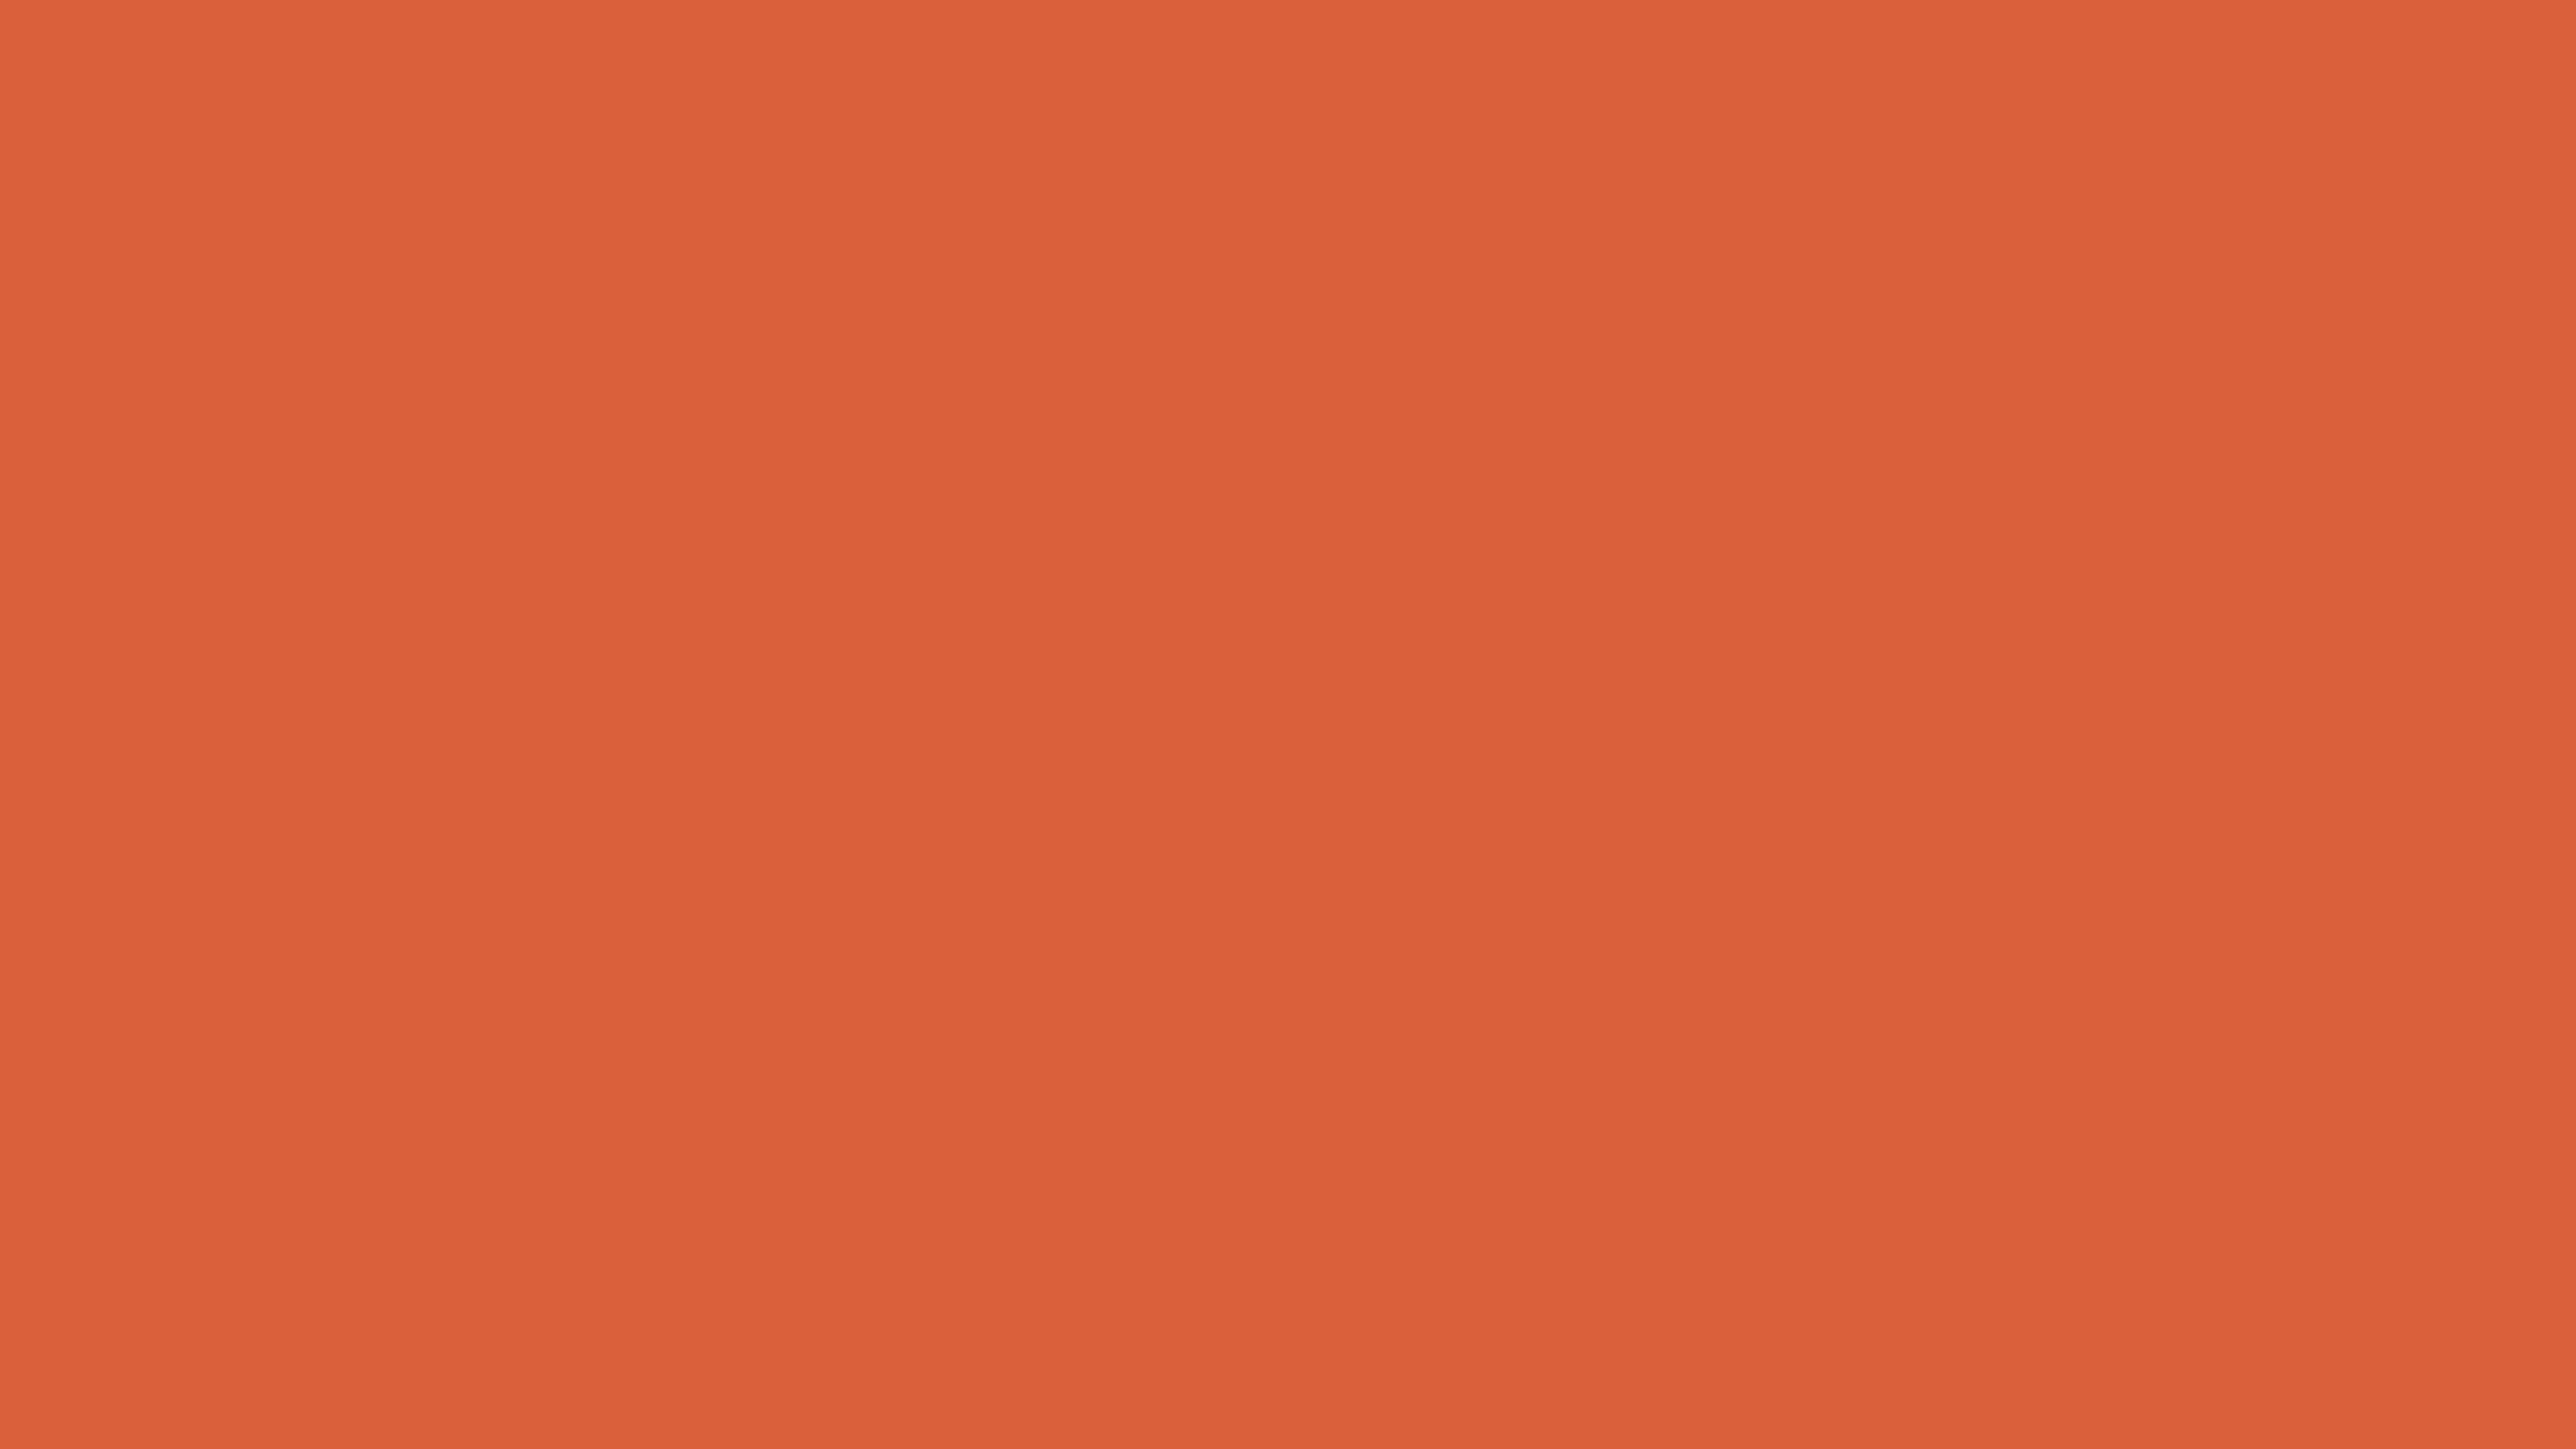 3840x2160 Medium Vermilion Solid Color Background